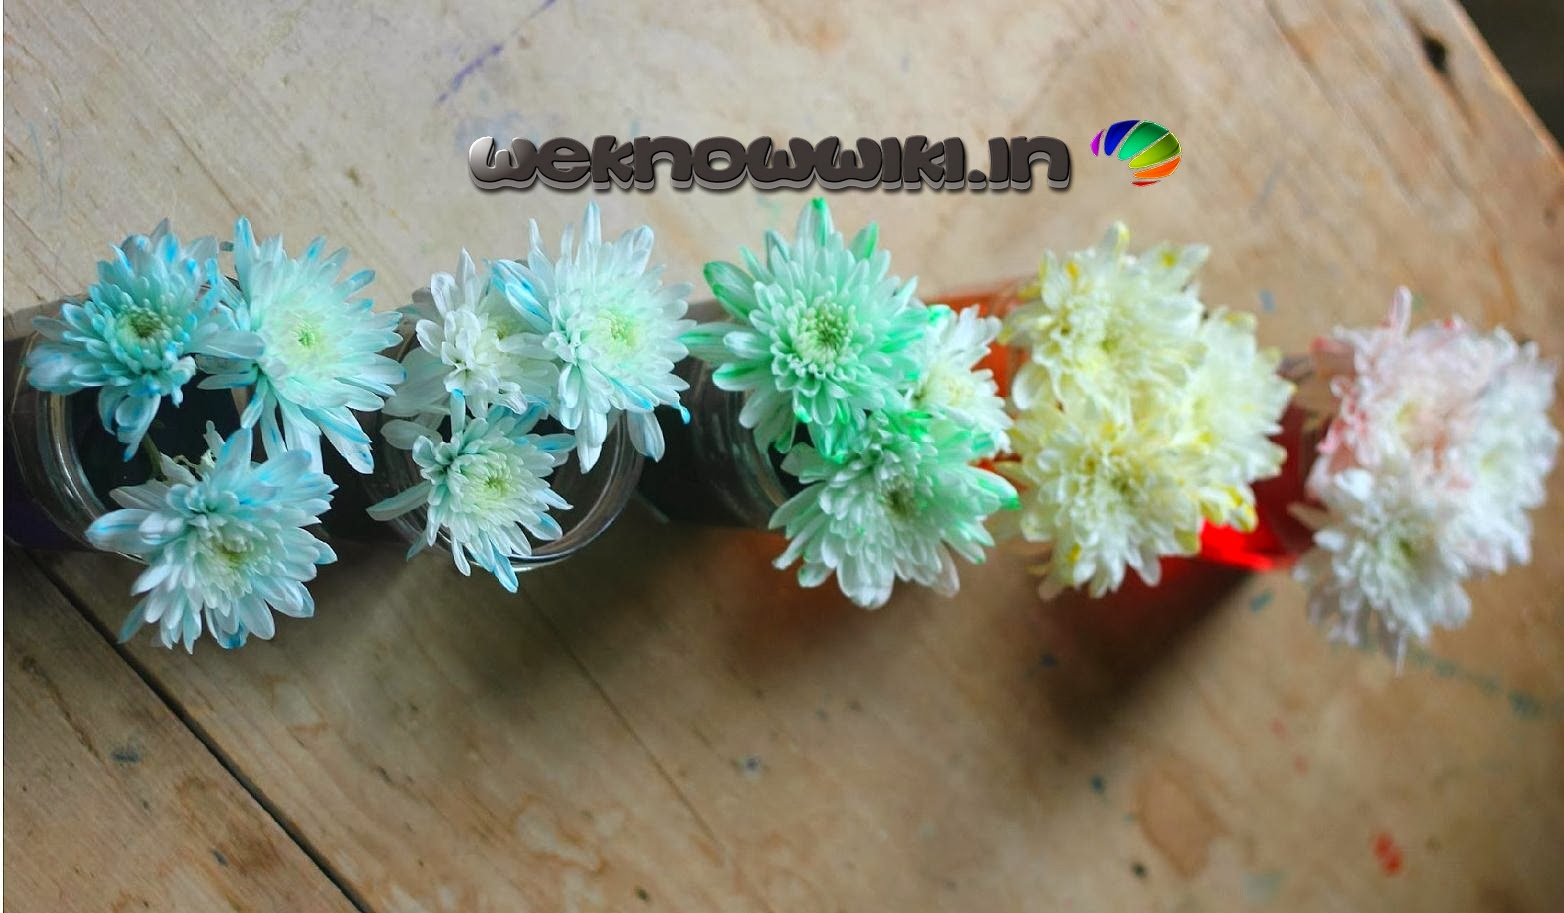 multi colour beautiful flower colour changing expirement | weknowwiki.in